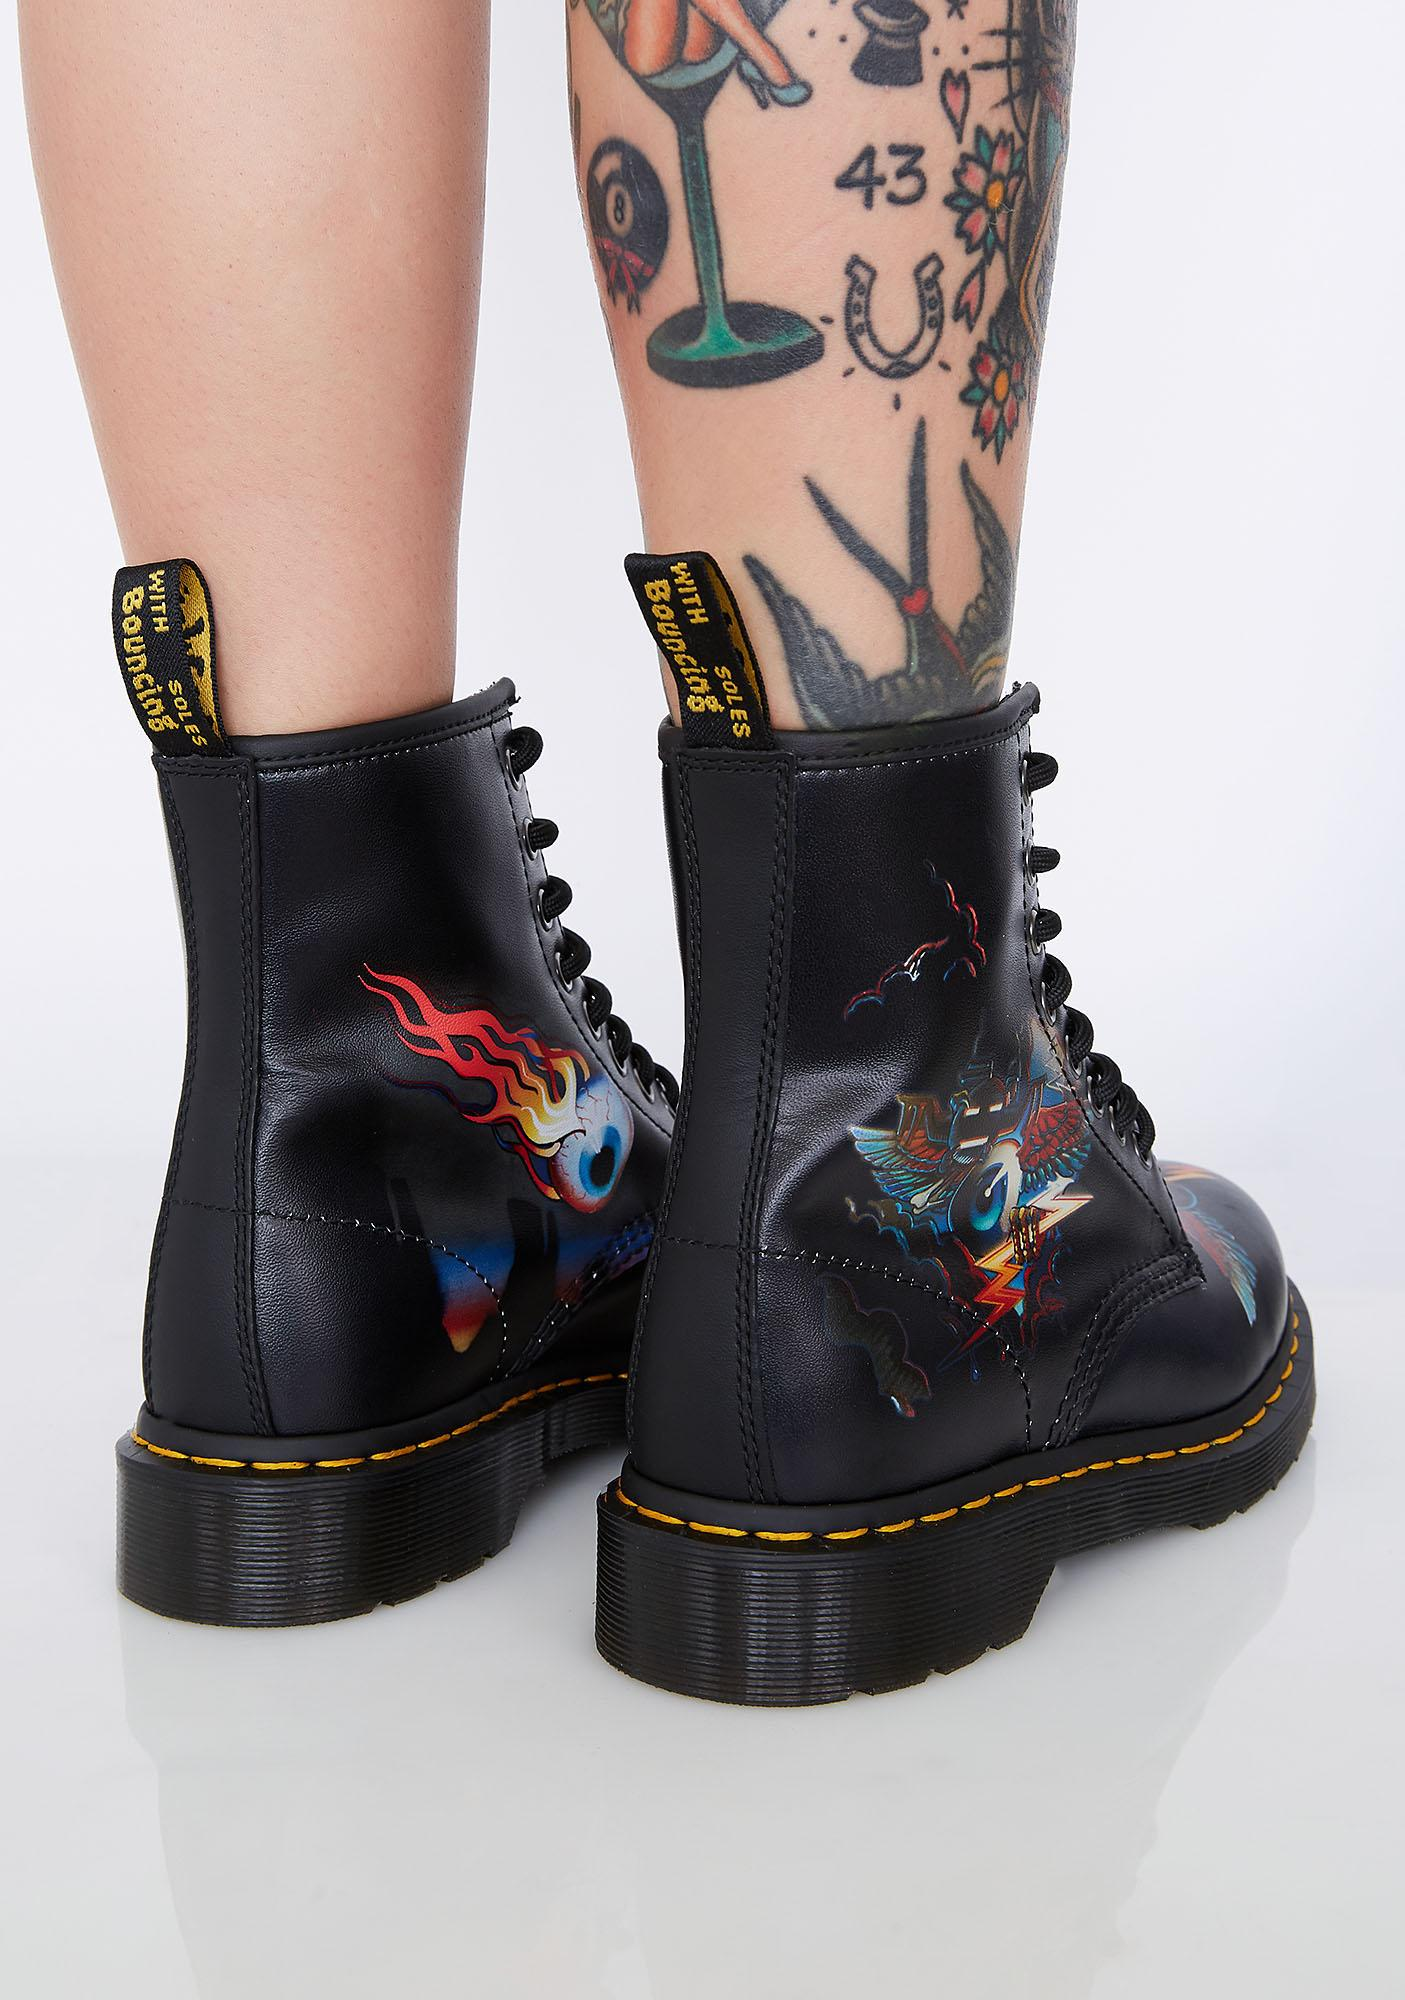 Dr. Martens 1460 Rick Griffin Eye Boots